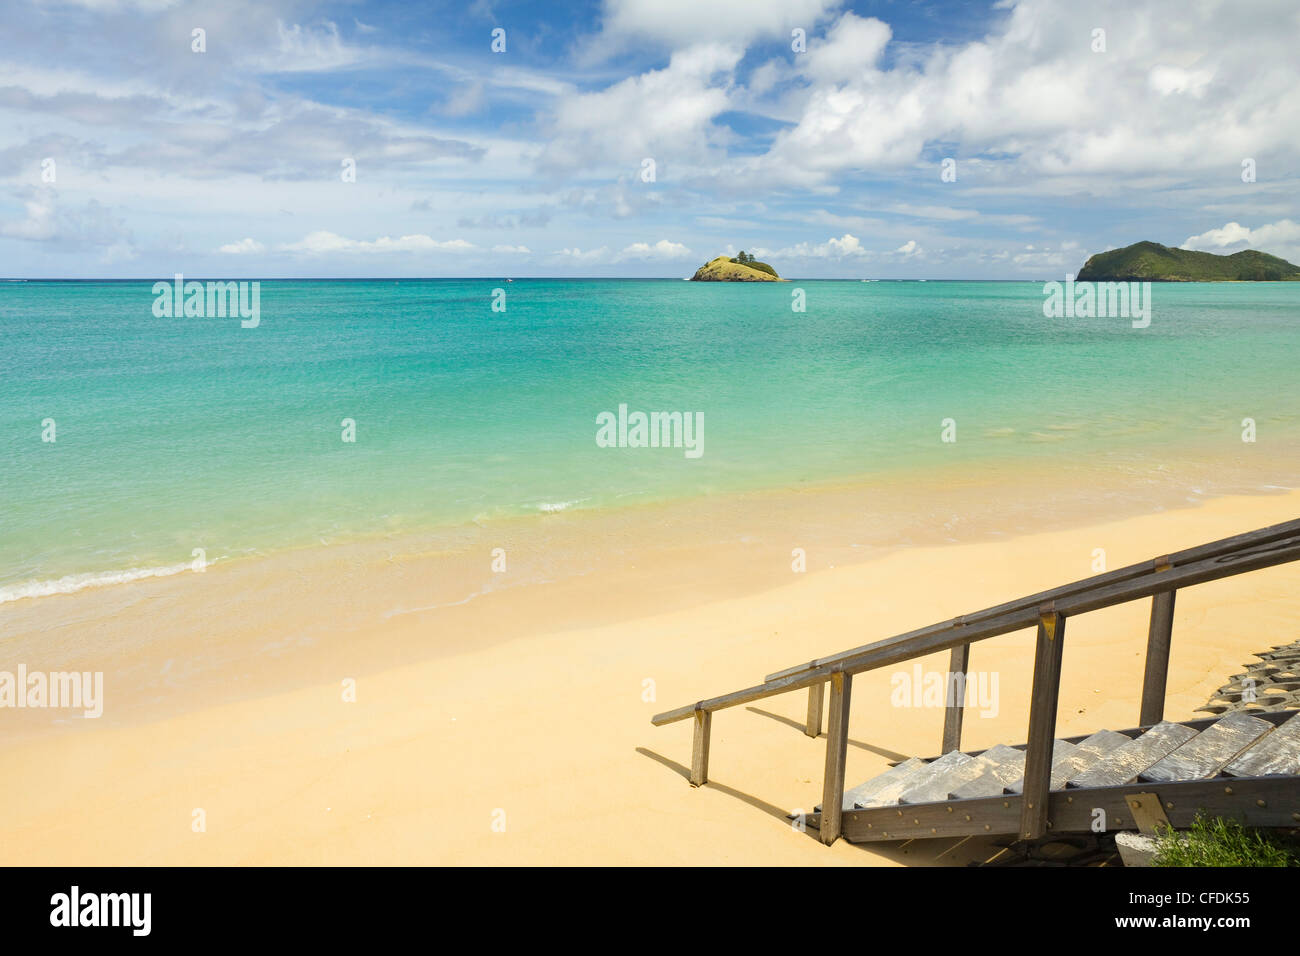 The lagoon with the world's most southerly coral reef, the Tasman Sea, Lord Howe Island, New South Wales, Australia - Stock Image